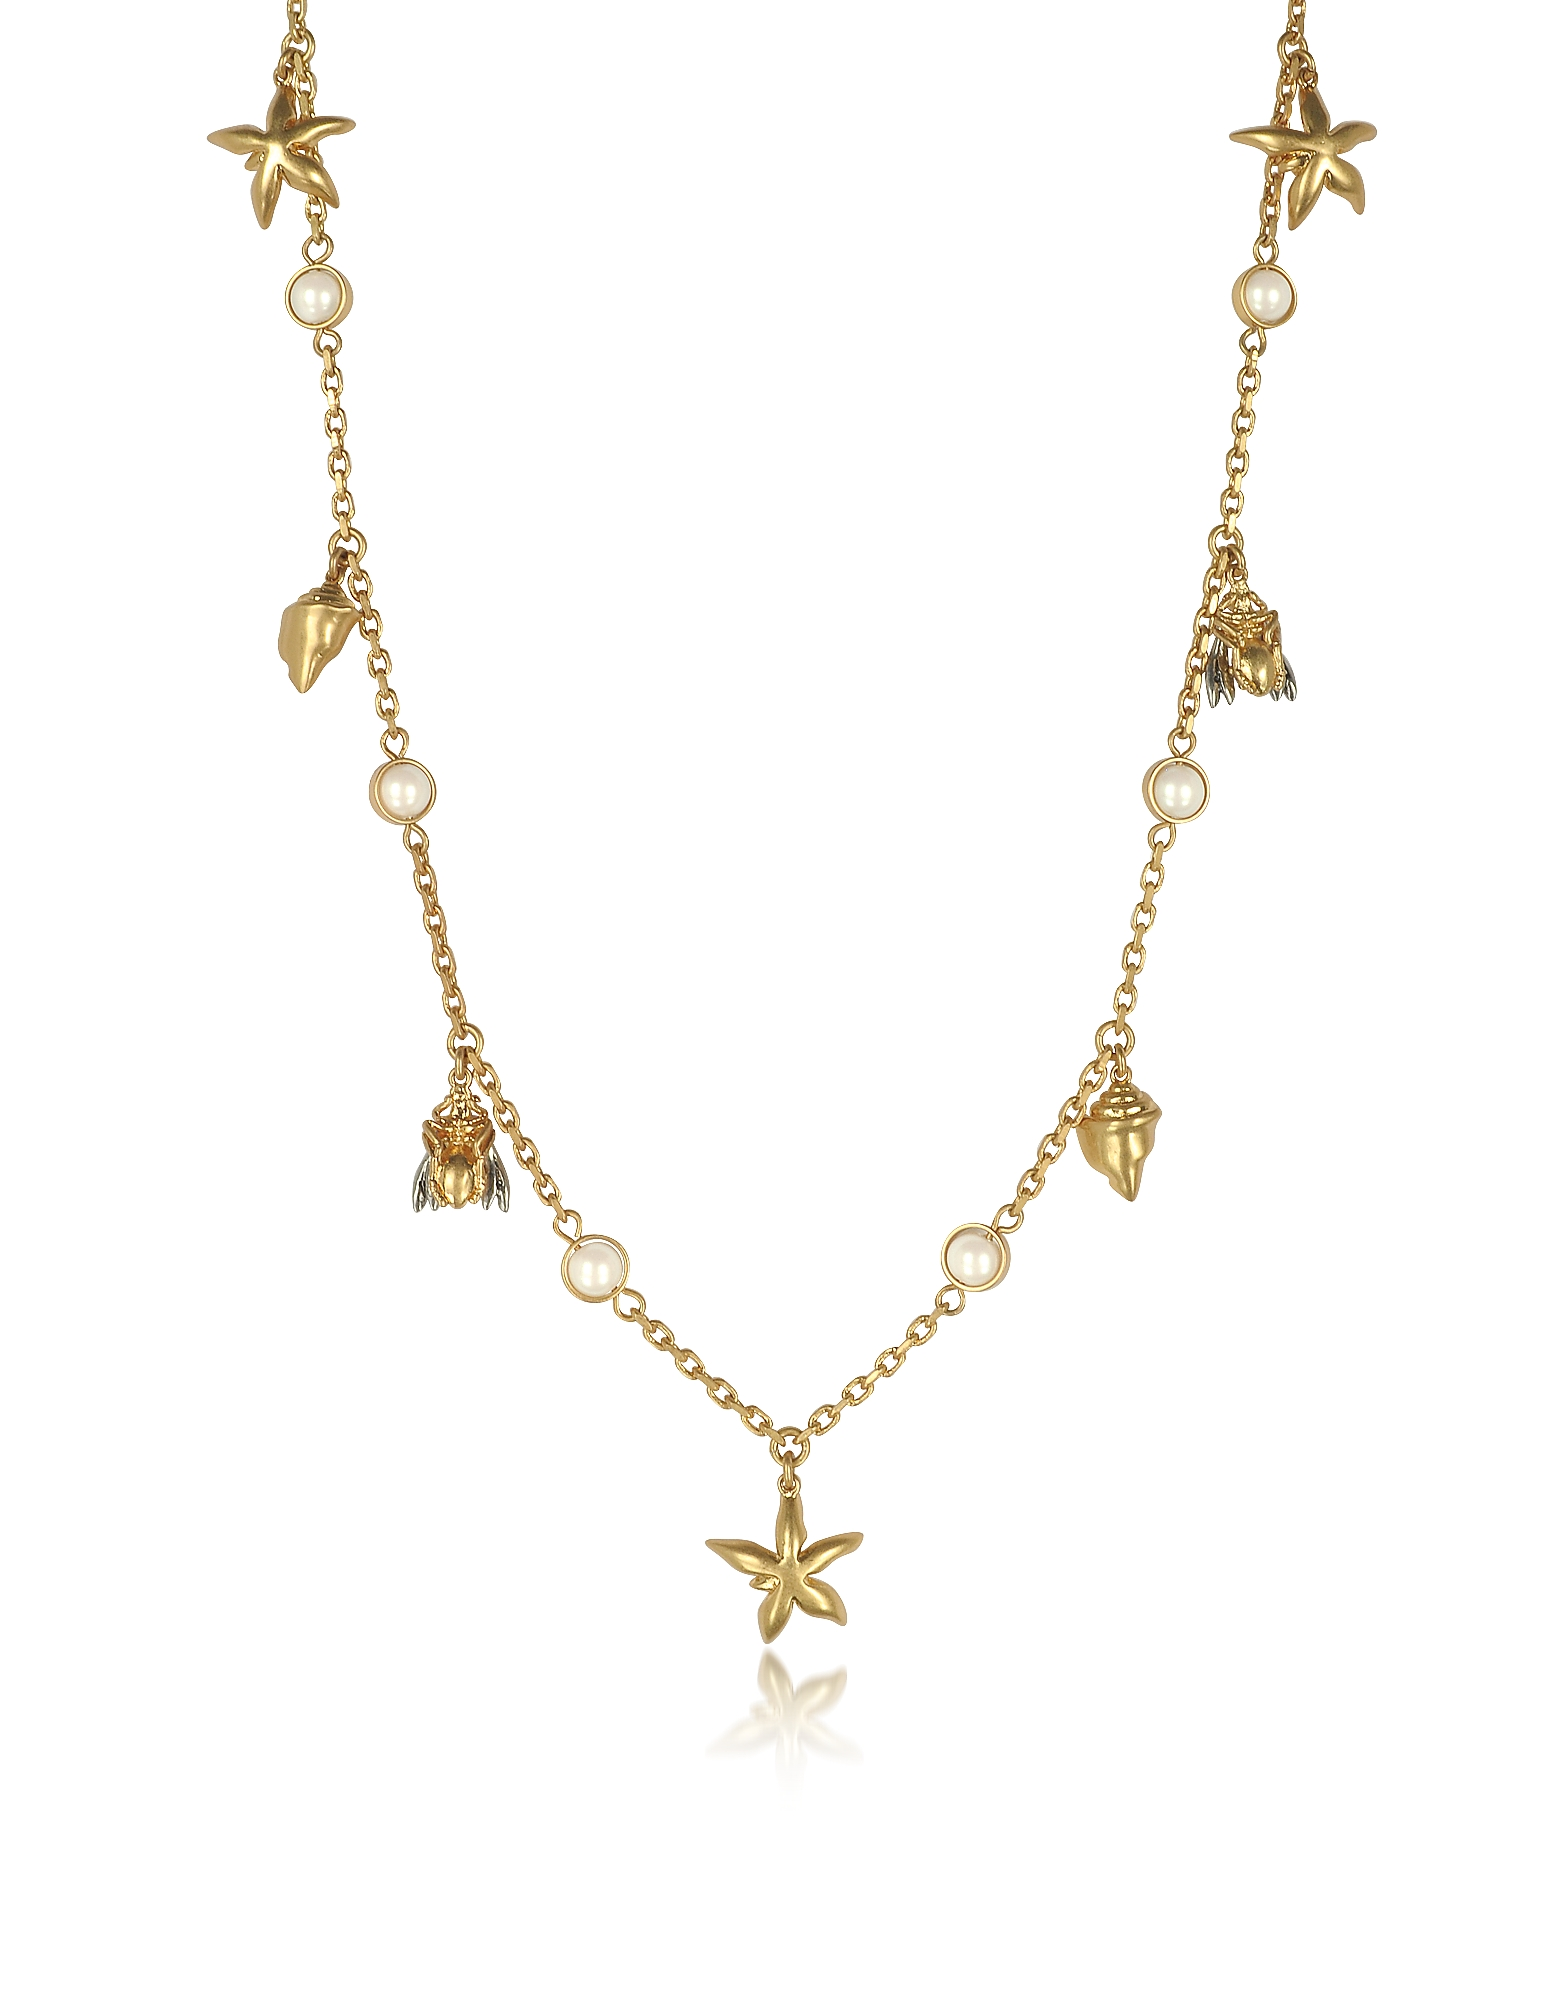 Tory Burch Designer Necklaces, Poetry Of Things Rosary